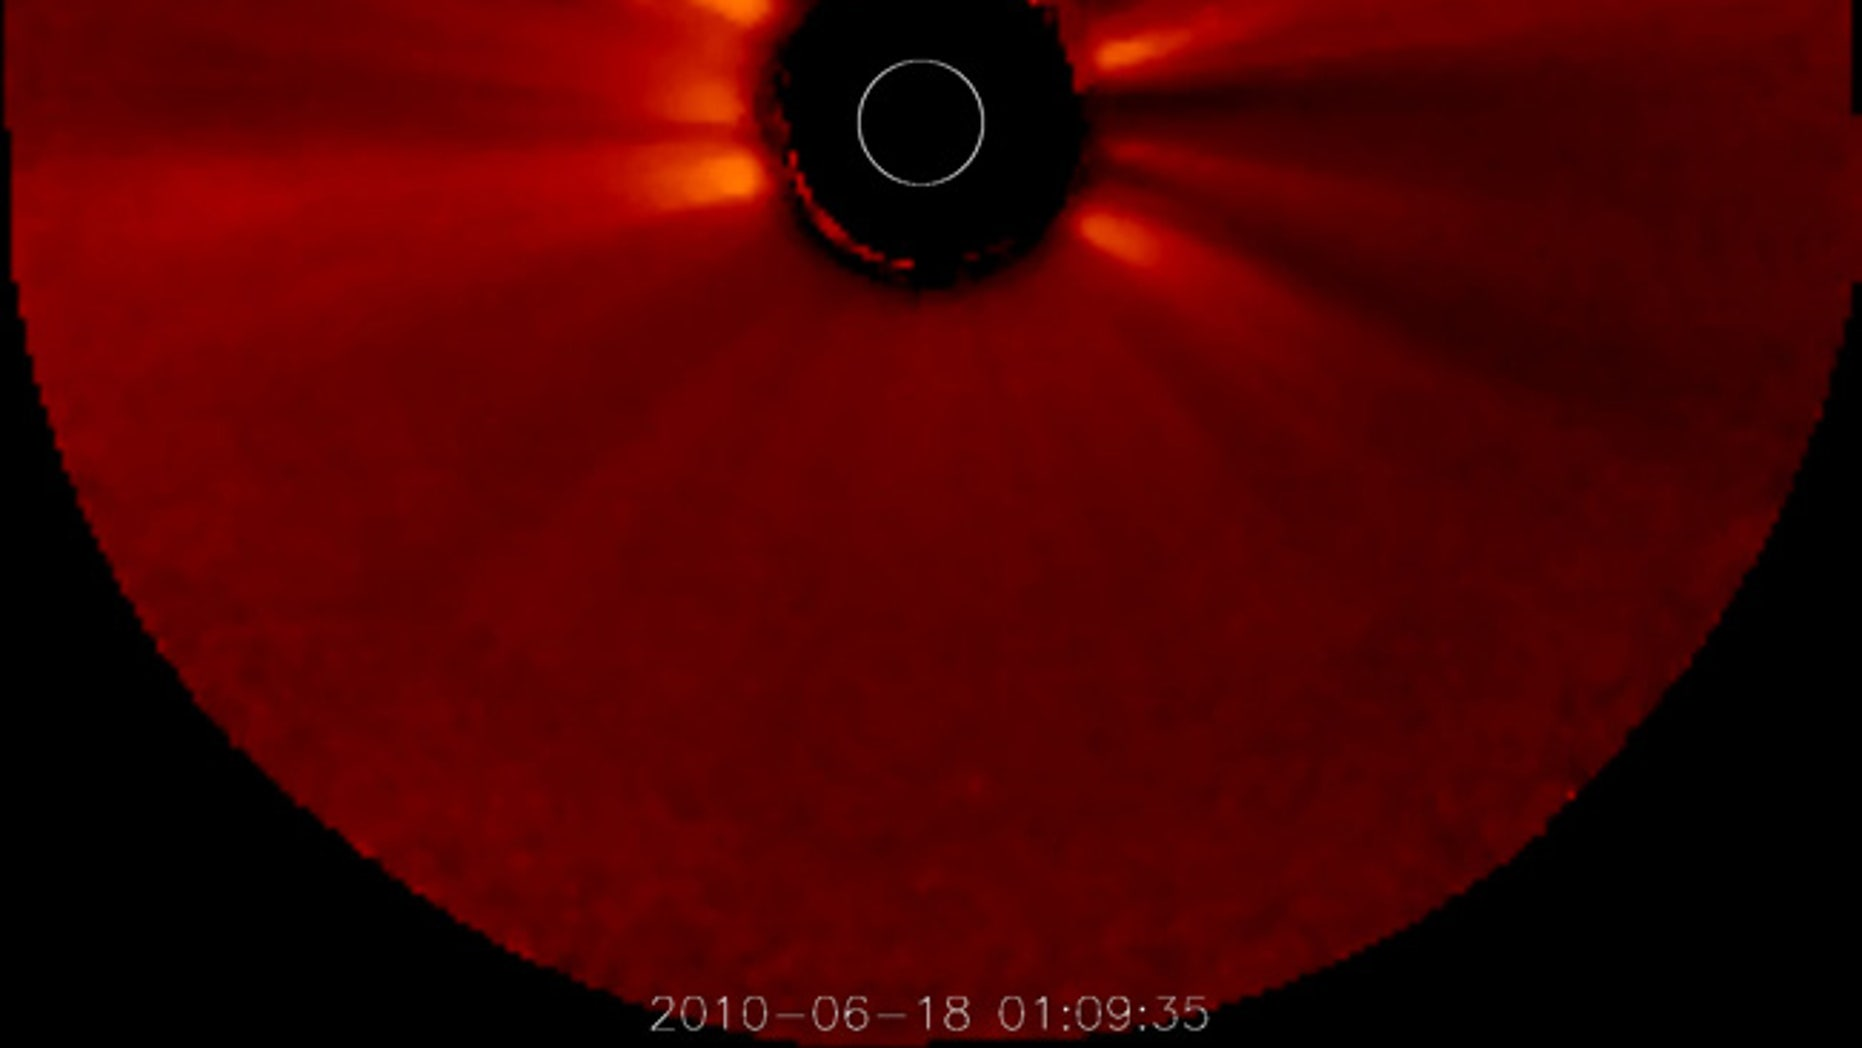 mage of the sun's corona, taken by NASA's STEREO Ahead spacecraft on June 8, 2010. The solar surface is blocked out in this view.